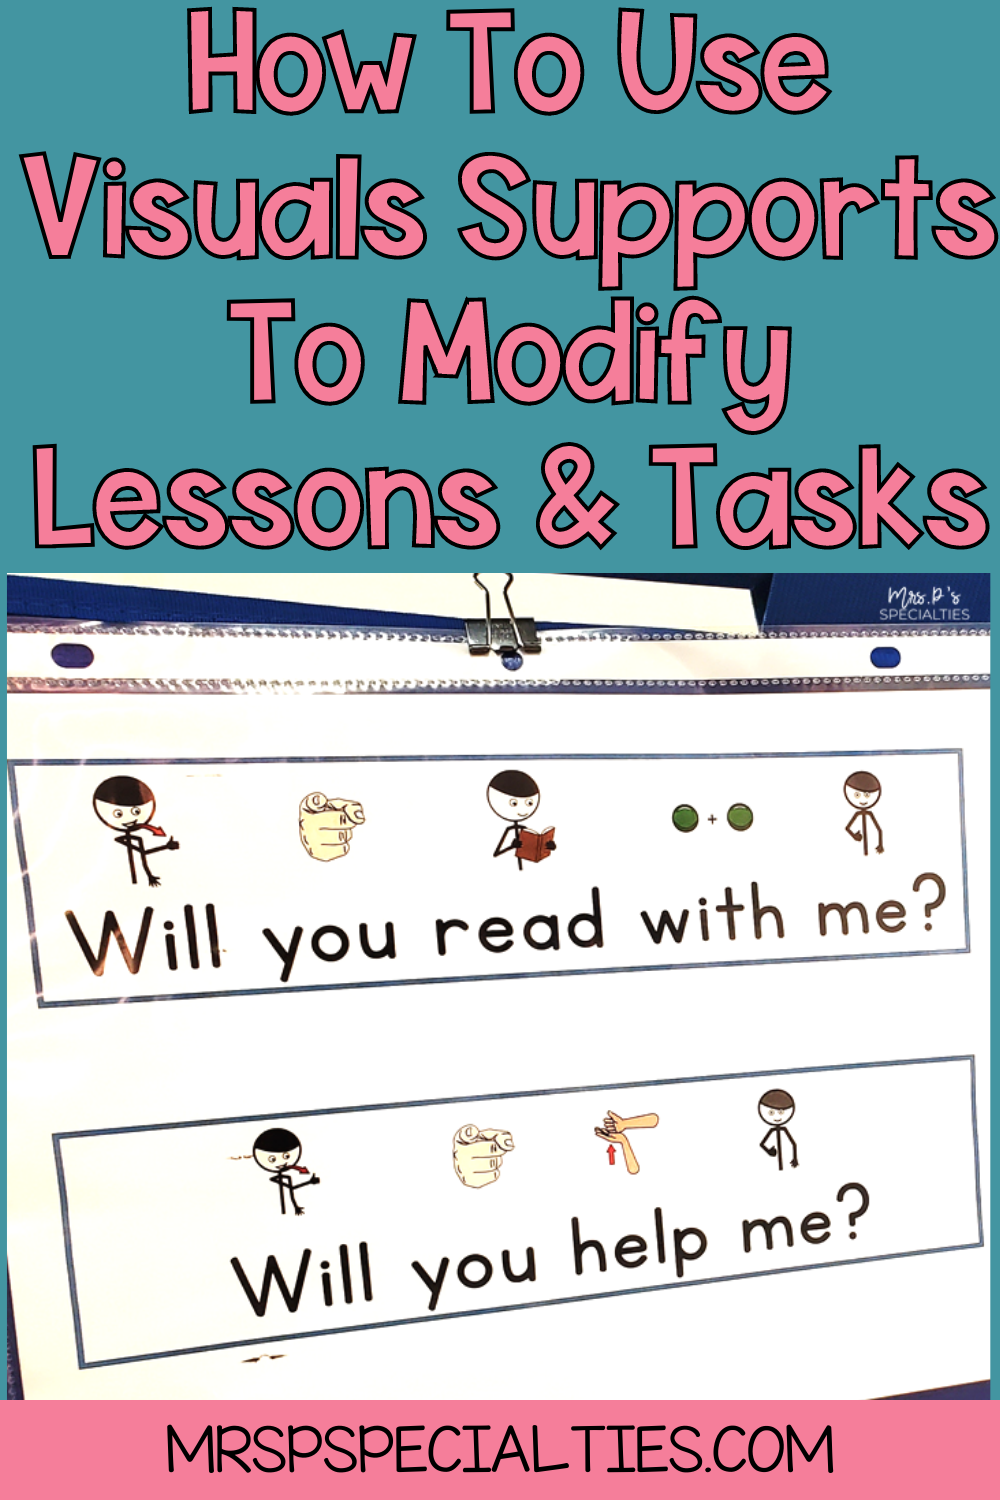 how to use visuals to modify and support lessons blog post pin image